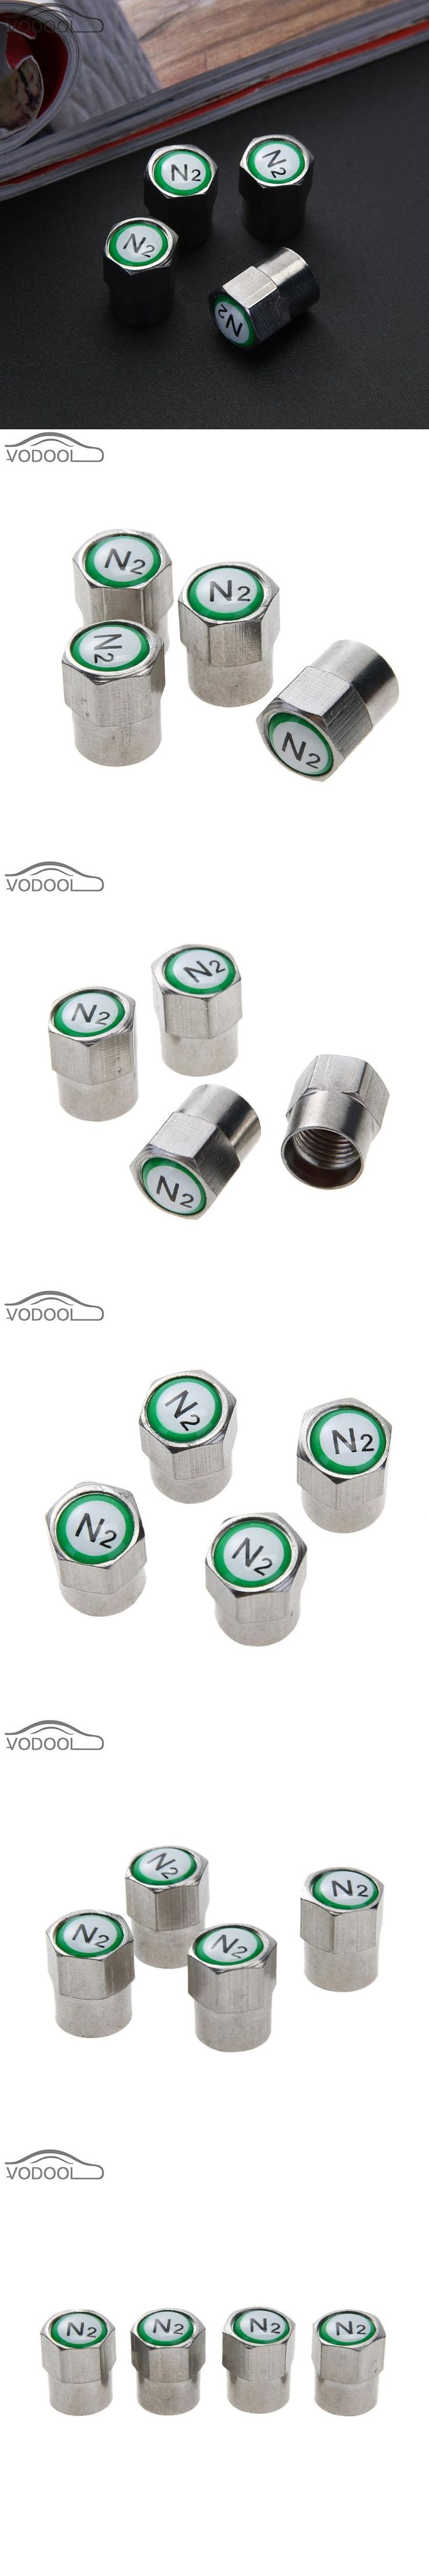 4Pcs Chrome Plated Copper Car Wheel Tire Tyre Valve Stem Cap Dust Covers for Schrader Valves Motorcycle Bicycle Electric Vehicle